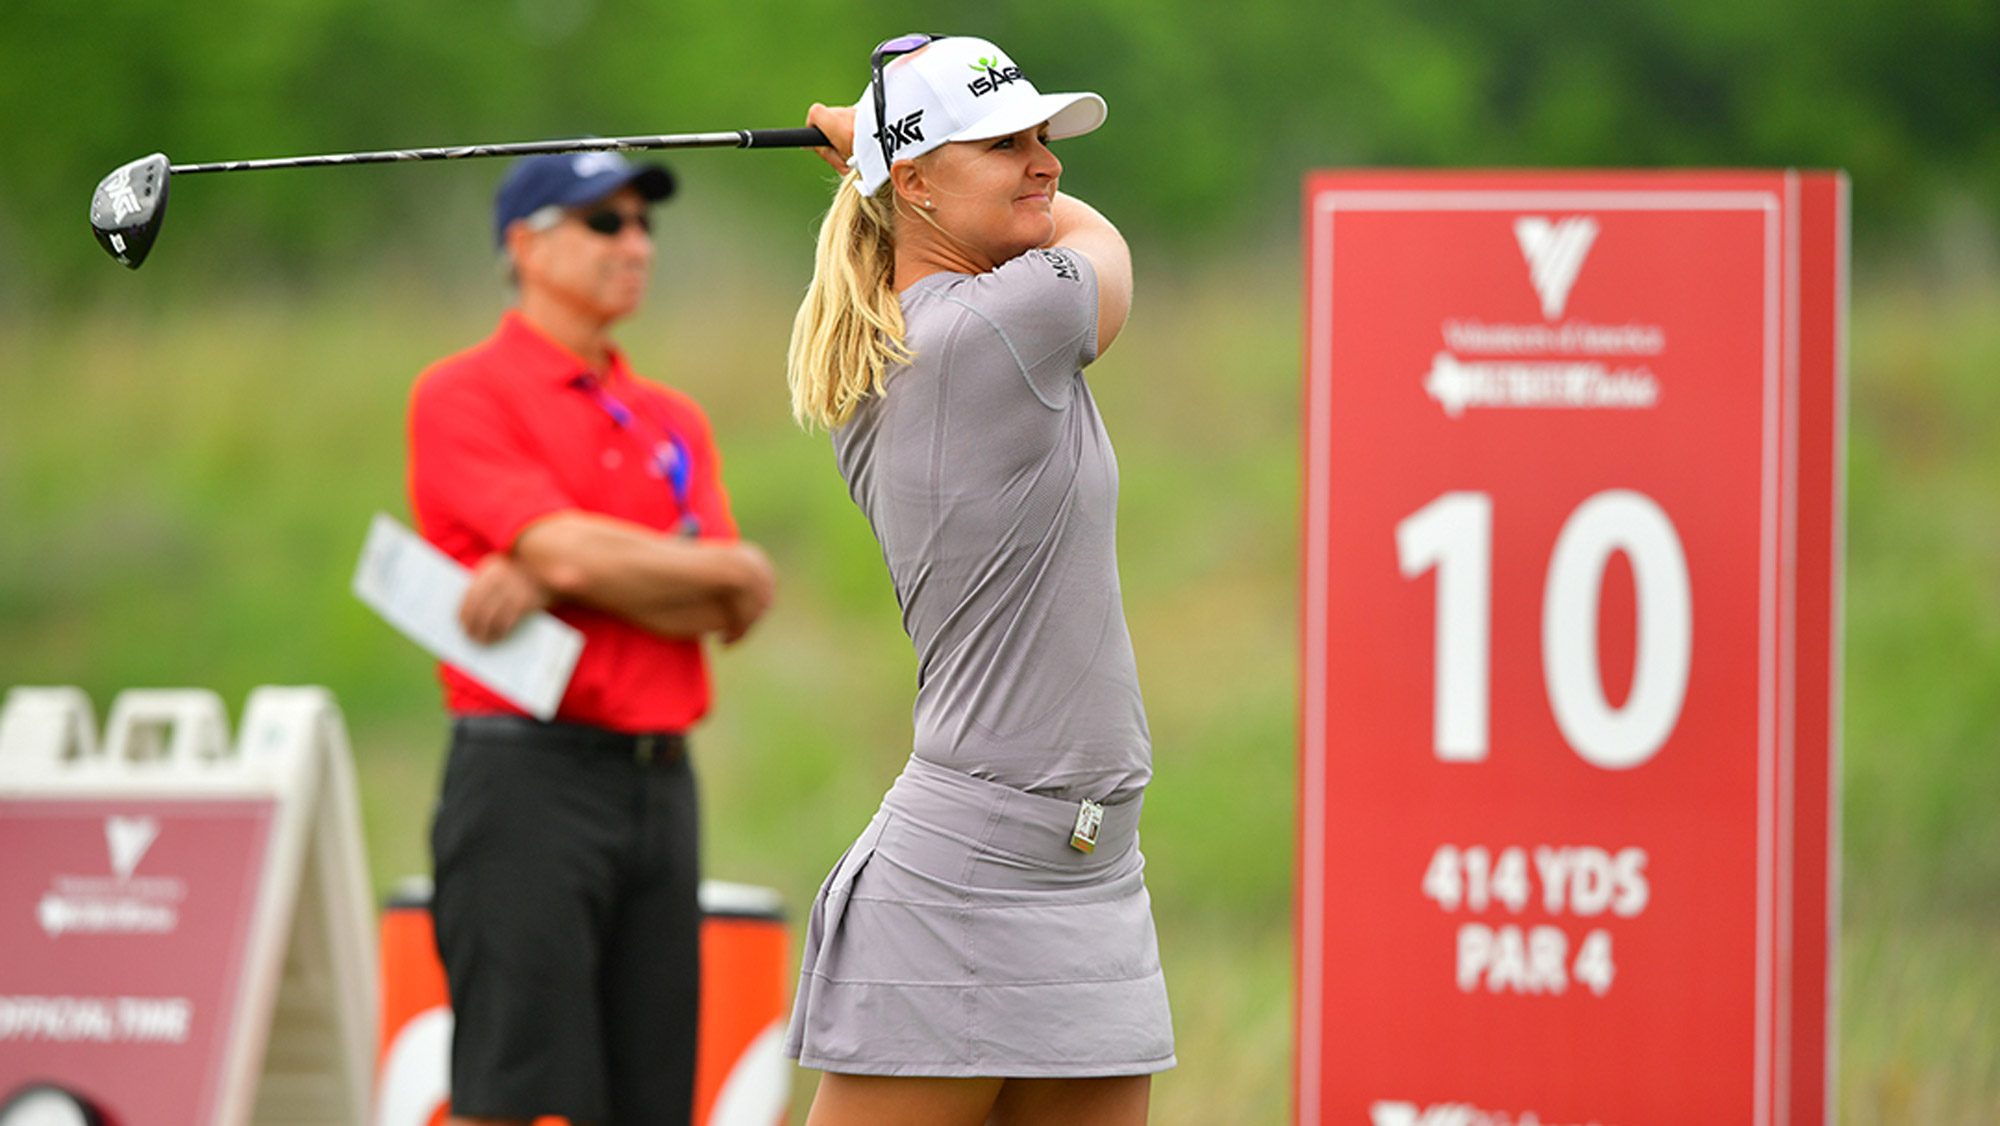 Anna Nordqvist Swings in the Pro-Am at the VOA LPGA Texas Classic